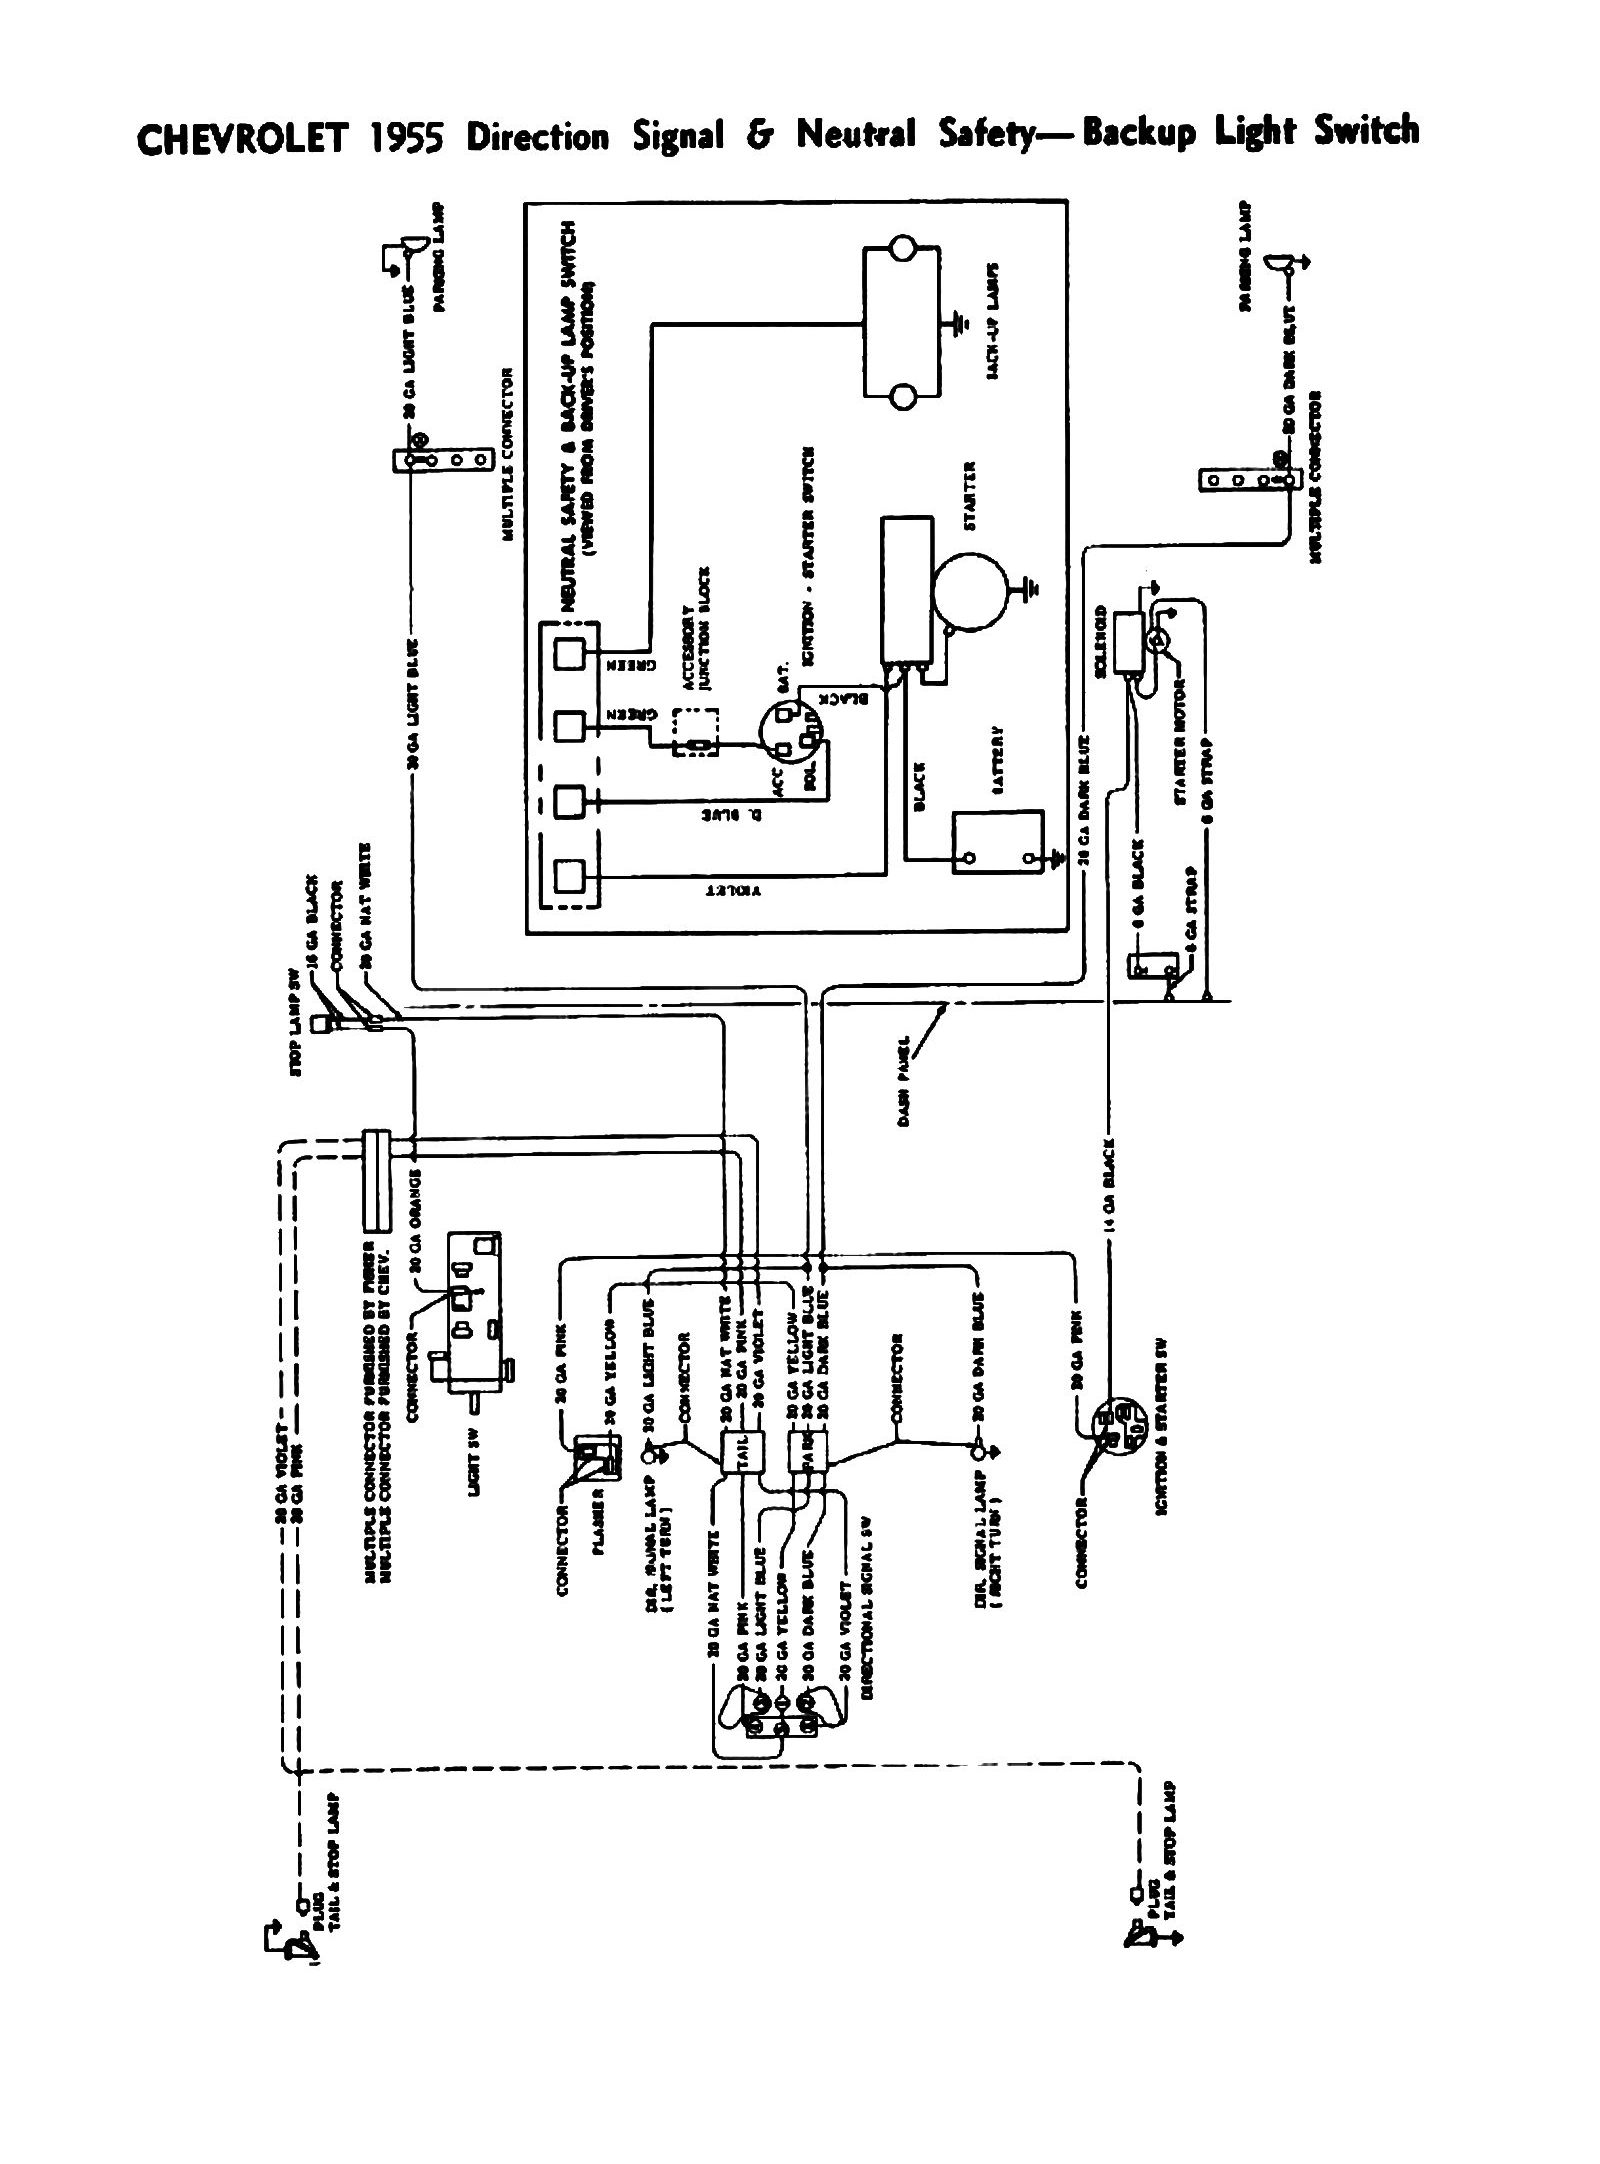 55signal wiring diagram for 1955 chevy bel air readingrat net 55 Chevy Turn Signal Wiring at et-consult.org